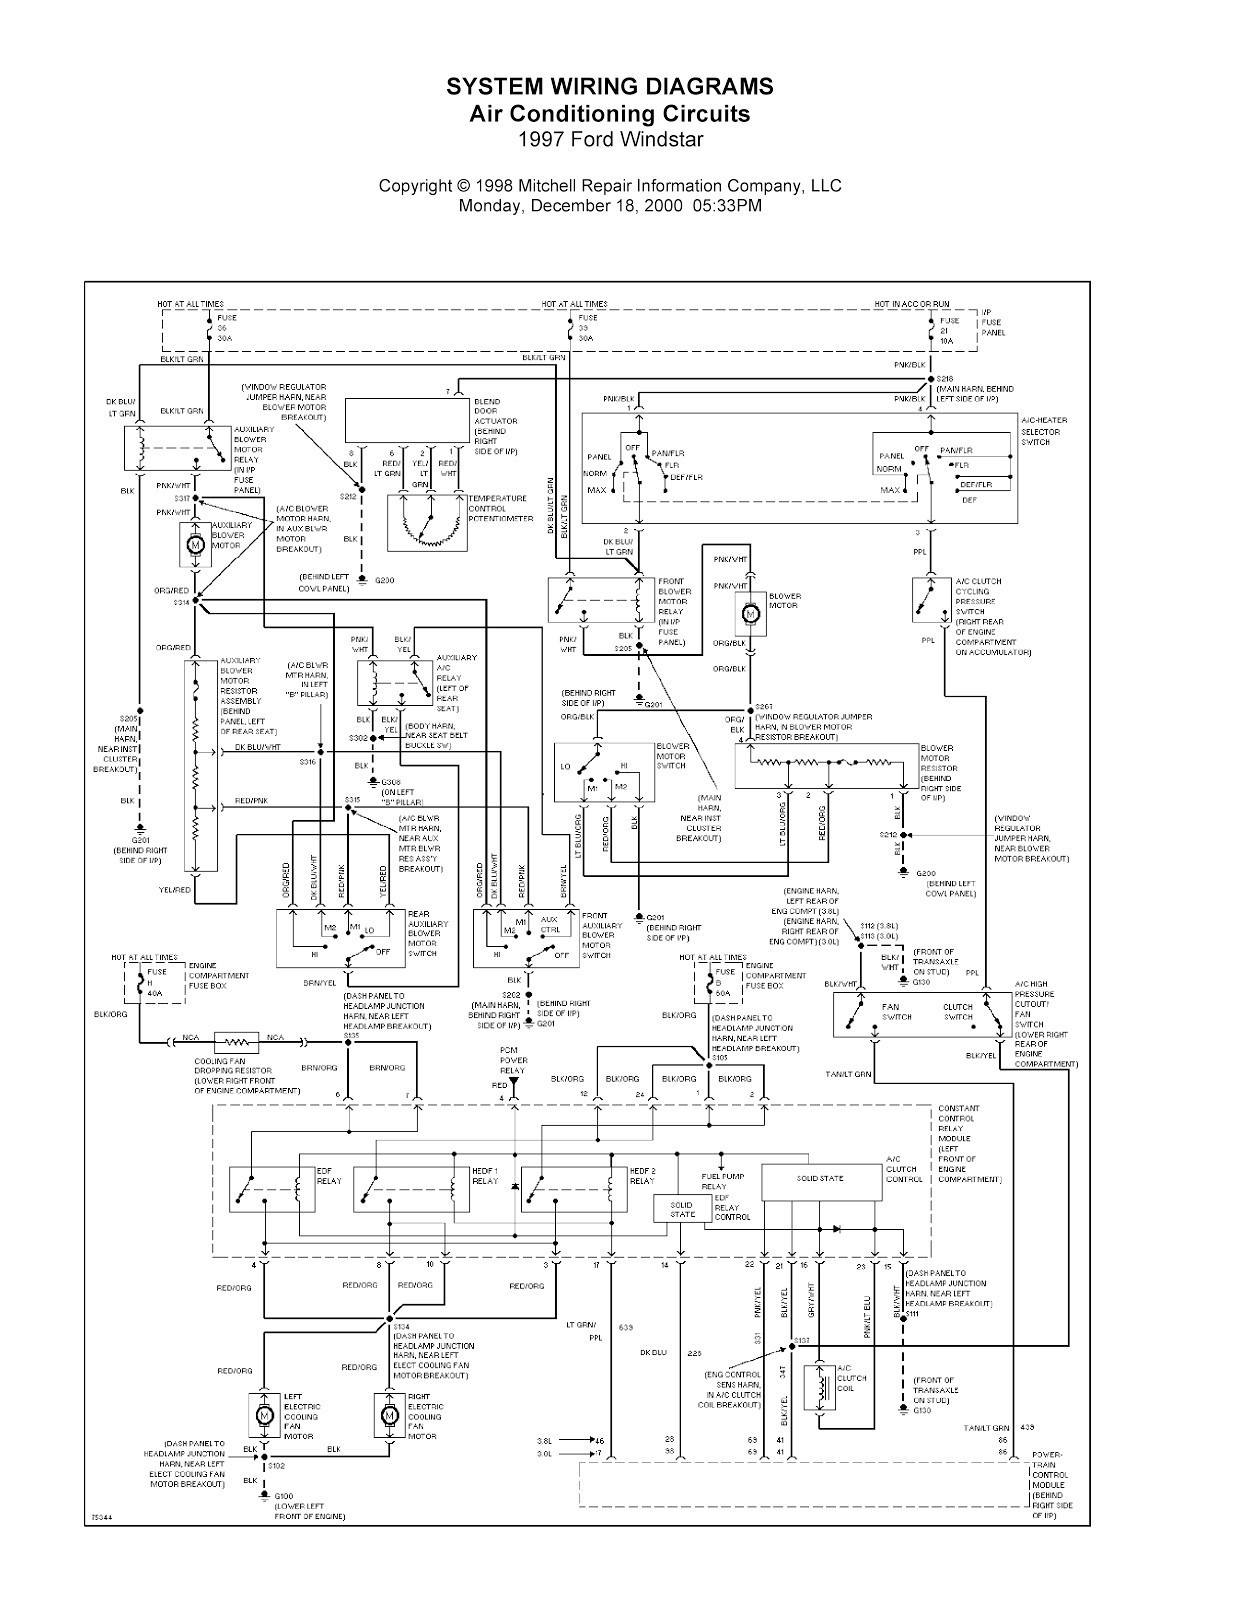 2001 Ford Windstar Power Window Electrical Diagram